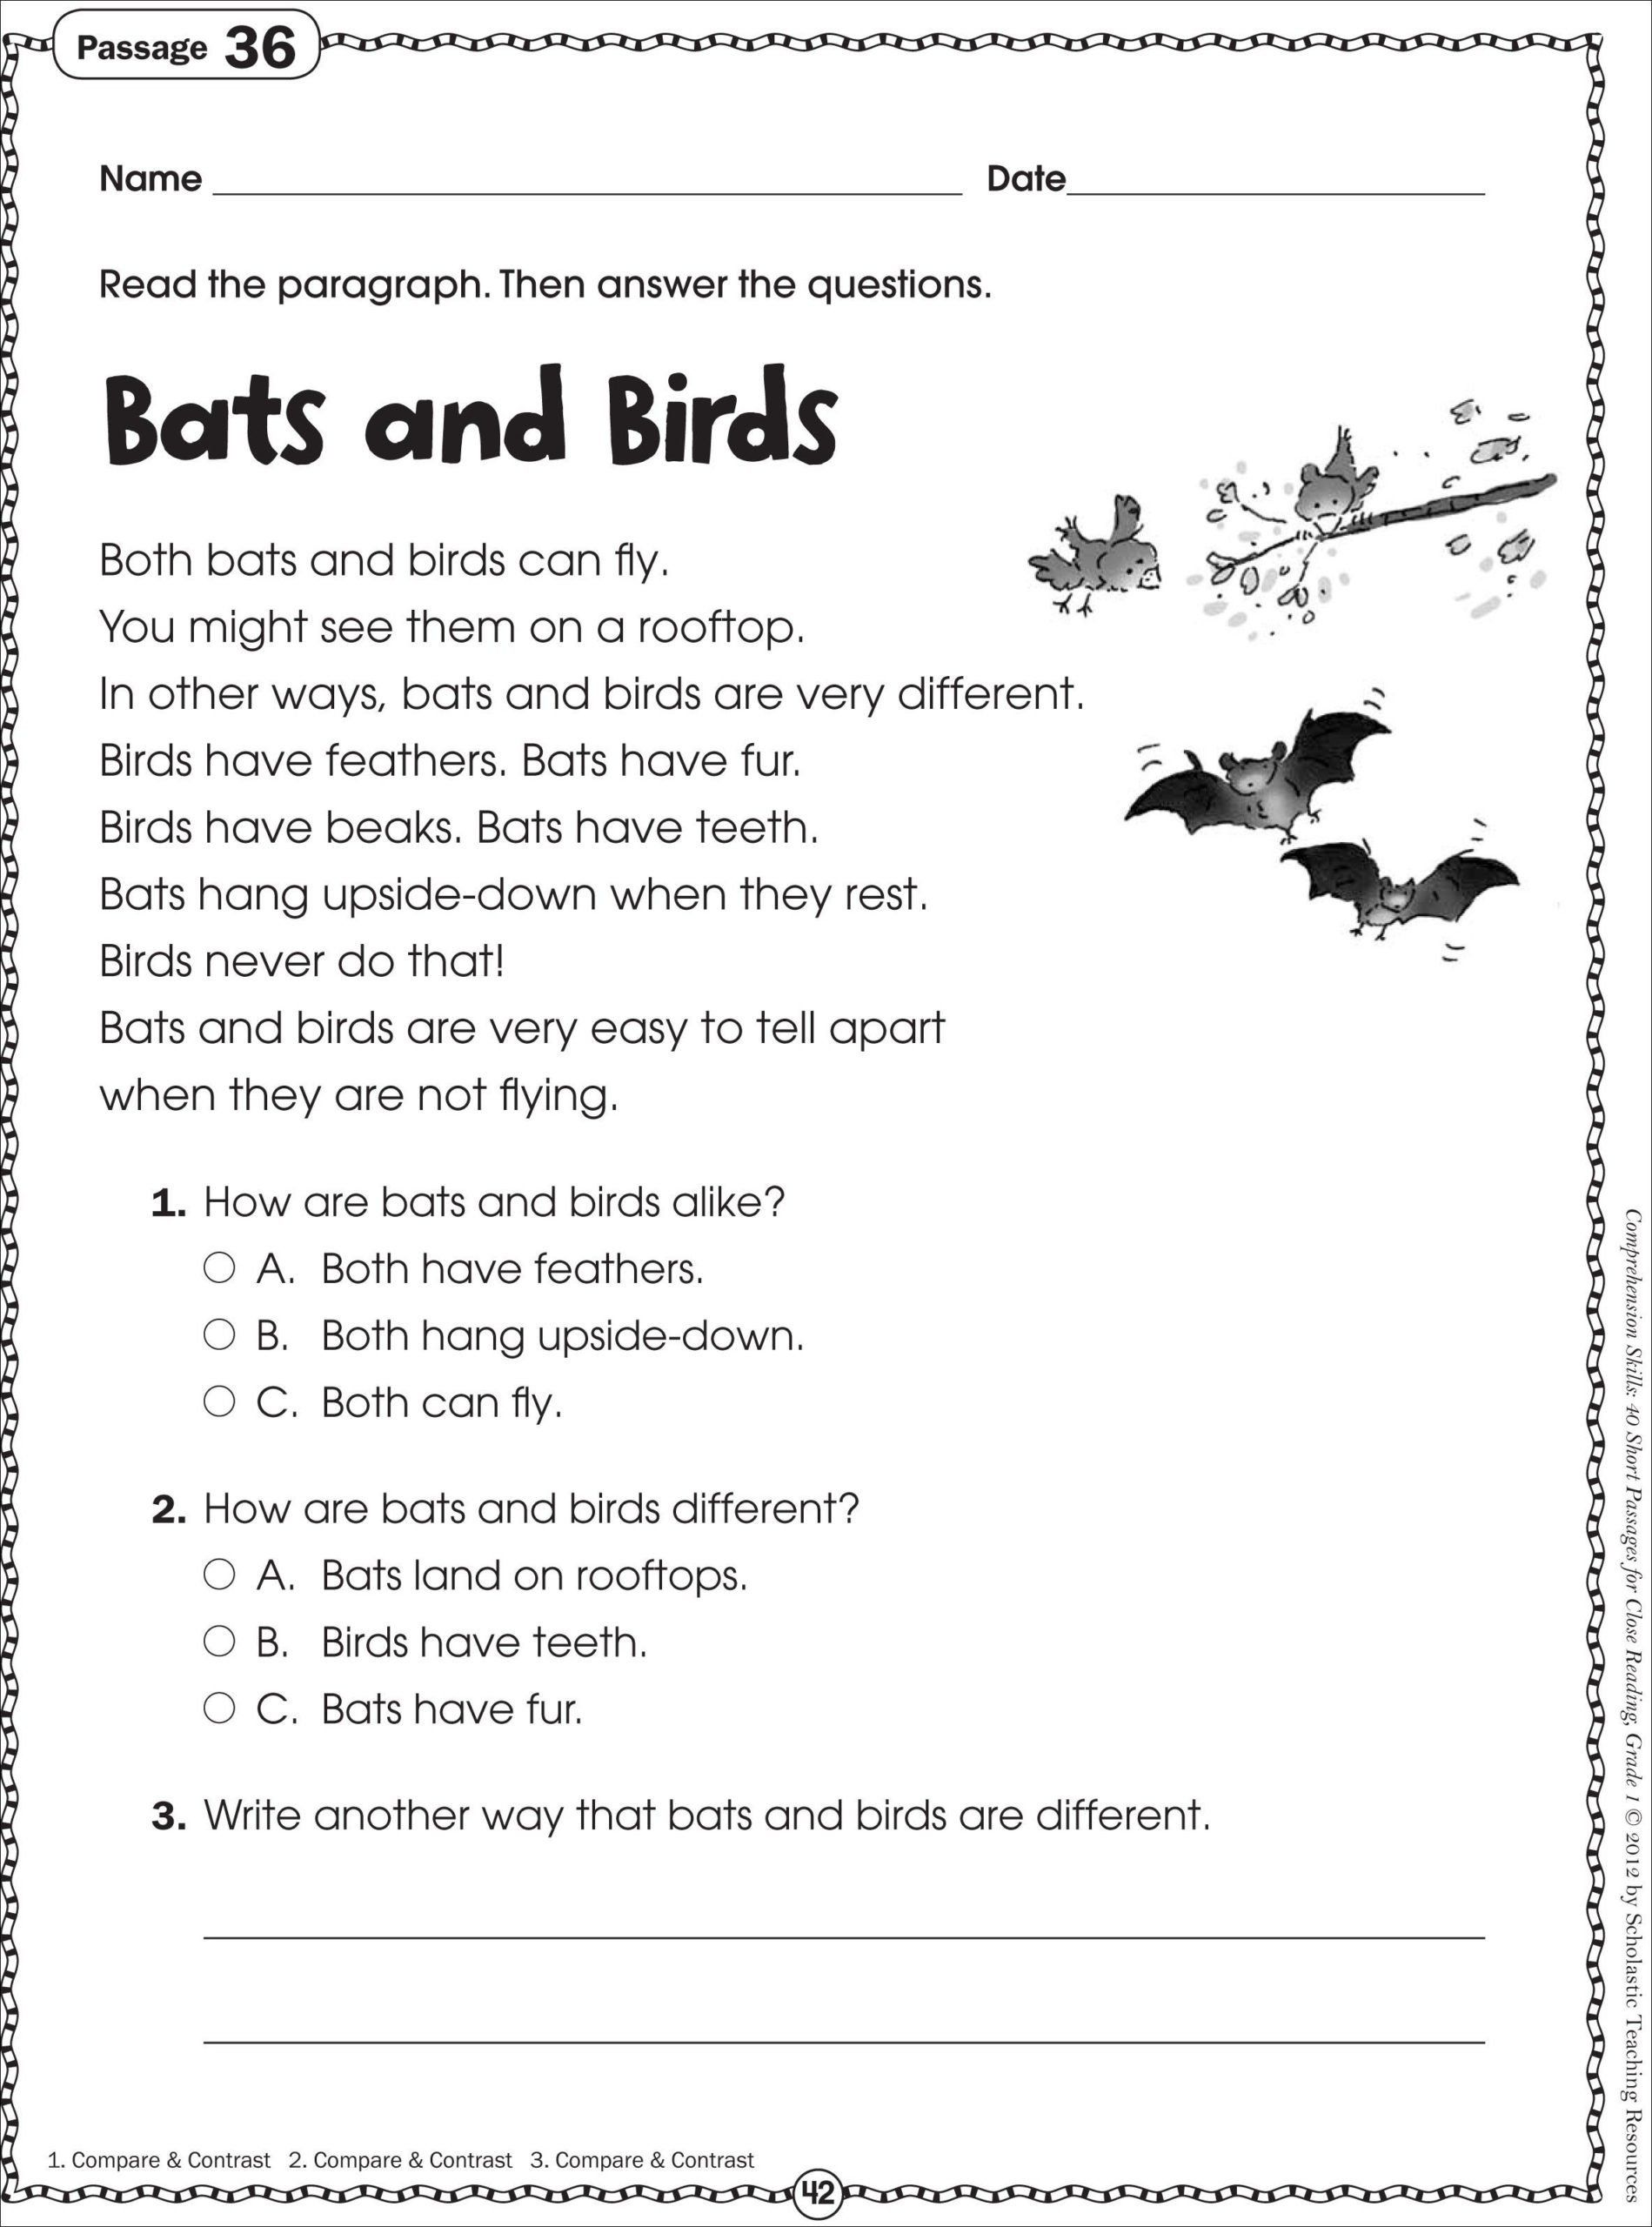 Halloween Reading Comprehension Worksheets for 4th Grade Free Printable  Reading Pre… in 2020   Comprehension worksheets [ 2560 x 1899 Pixel ]